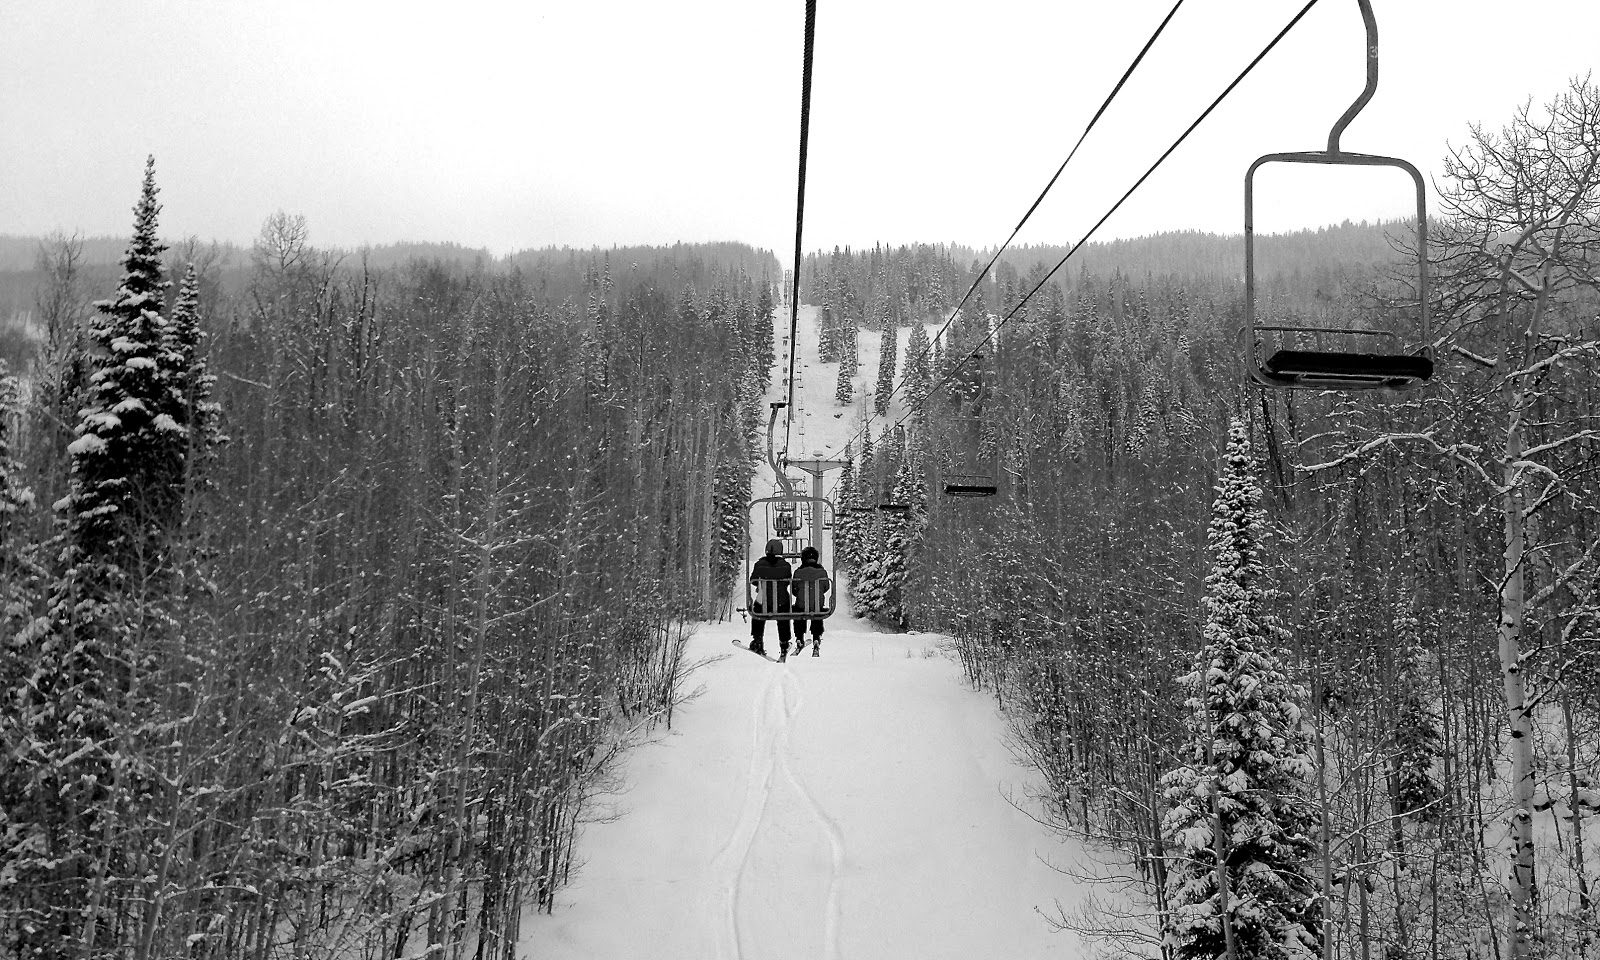 On the ski lift